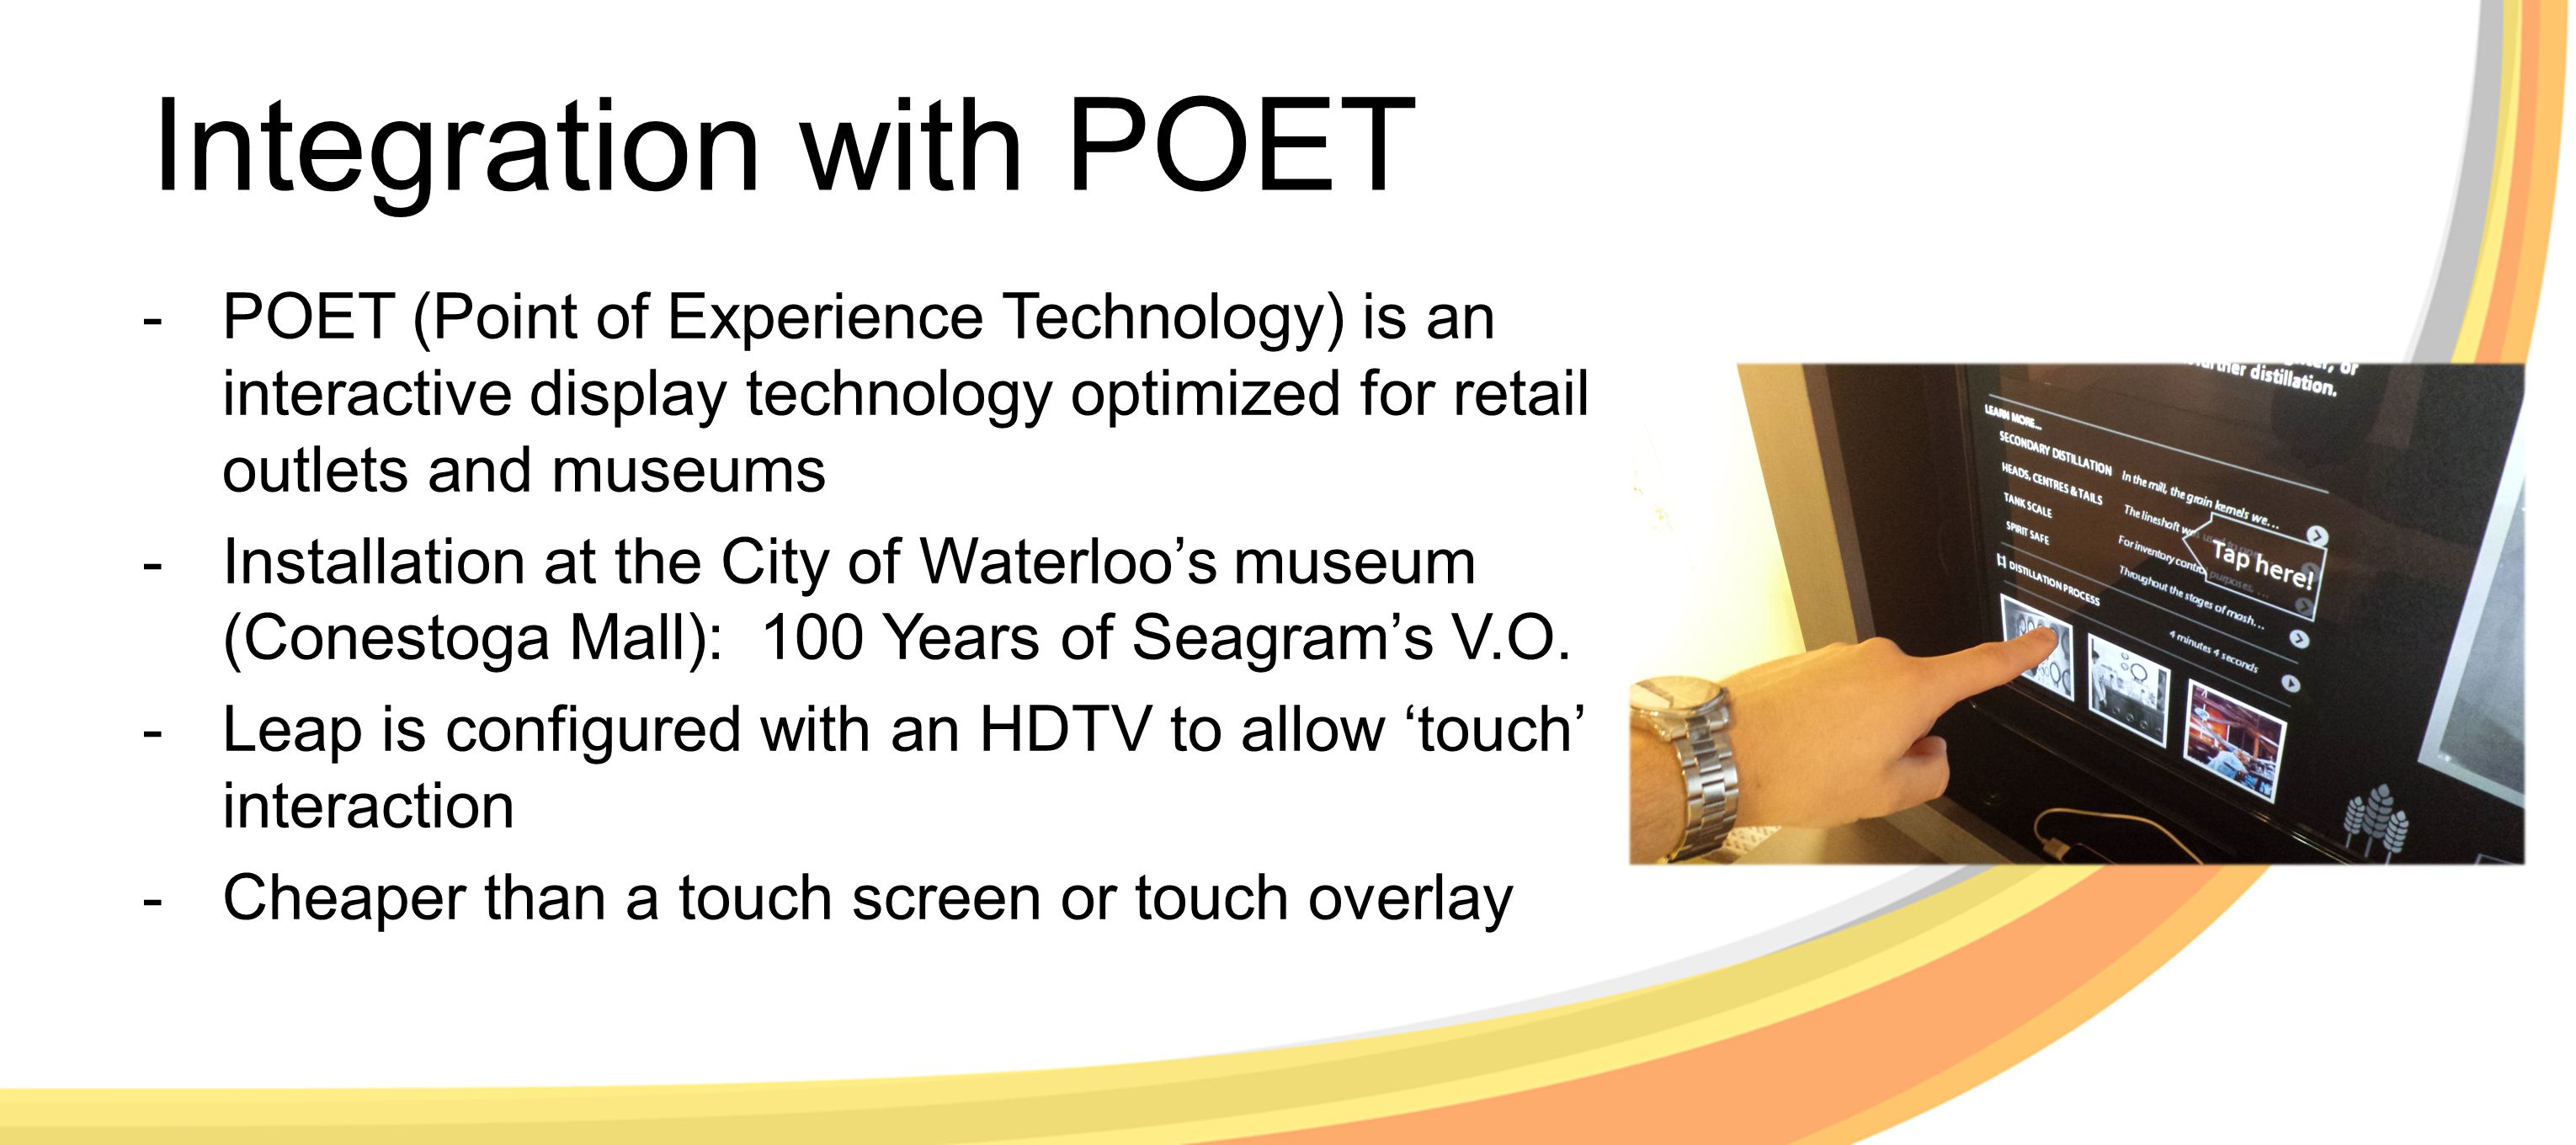 Integration with POET -POET (Point of Experience Technology) is an interactive display technology optimized for retail outlets and museums -Installation at the City of Waterloo's museum (Conestoga Mall): 100 Years of Seagram's V.O.